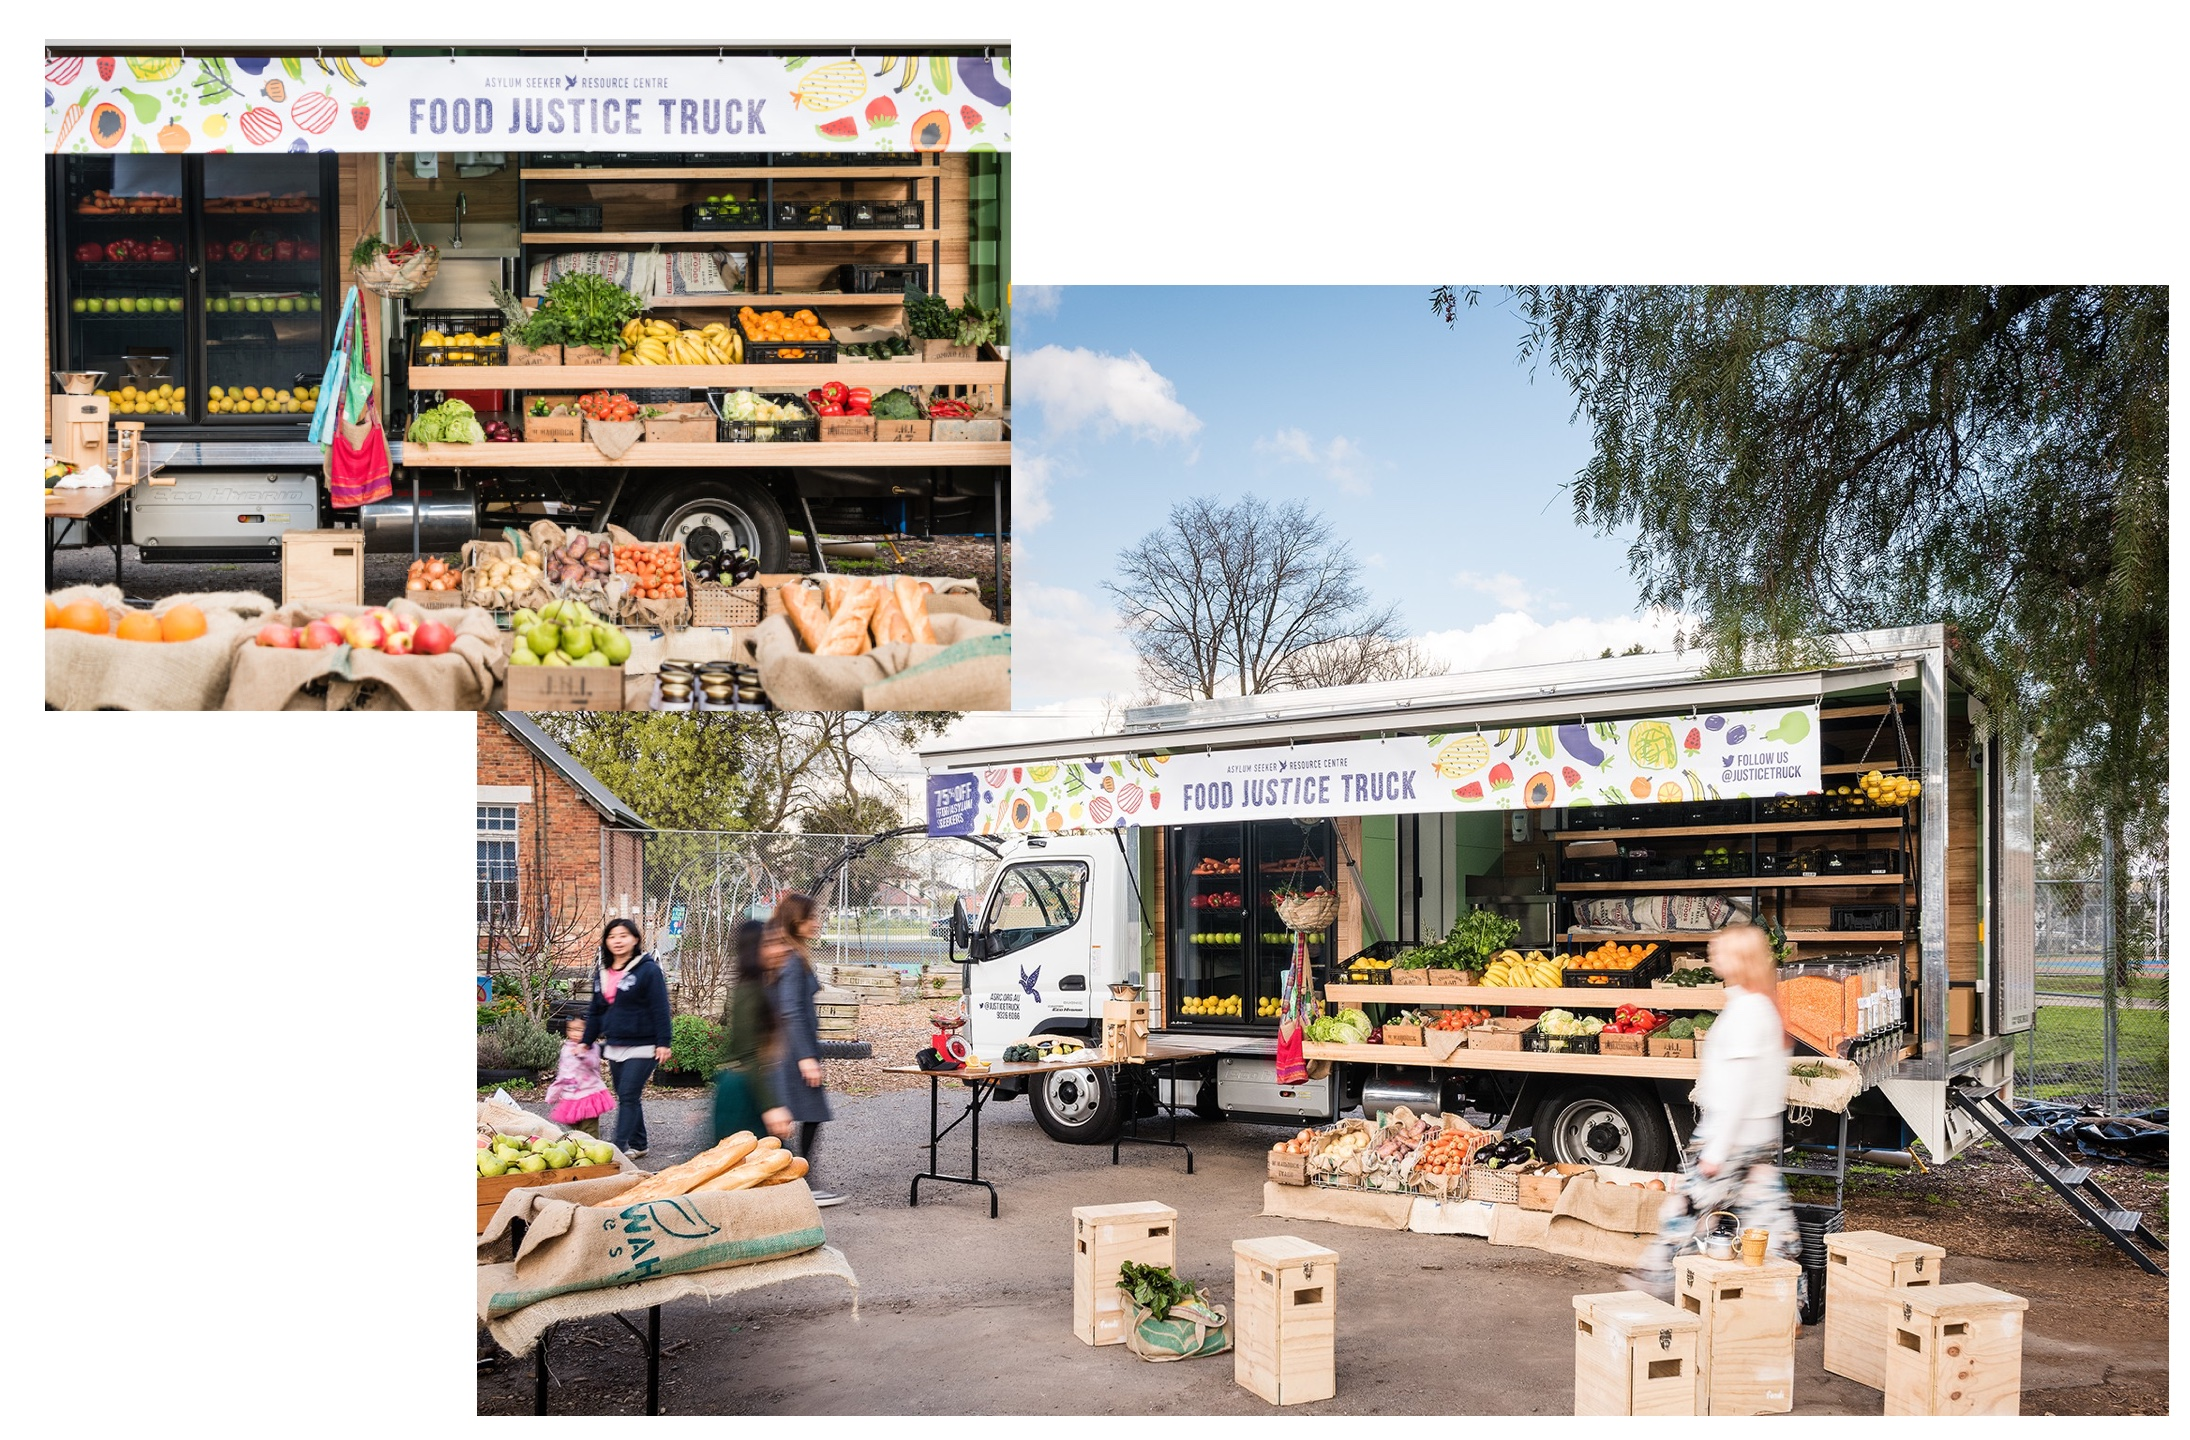 ASRC's Food Justice Truck